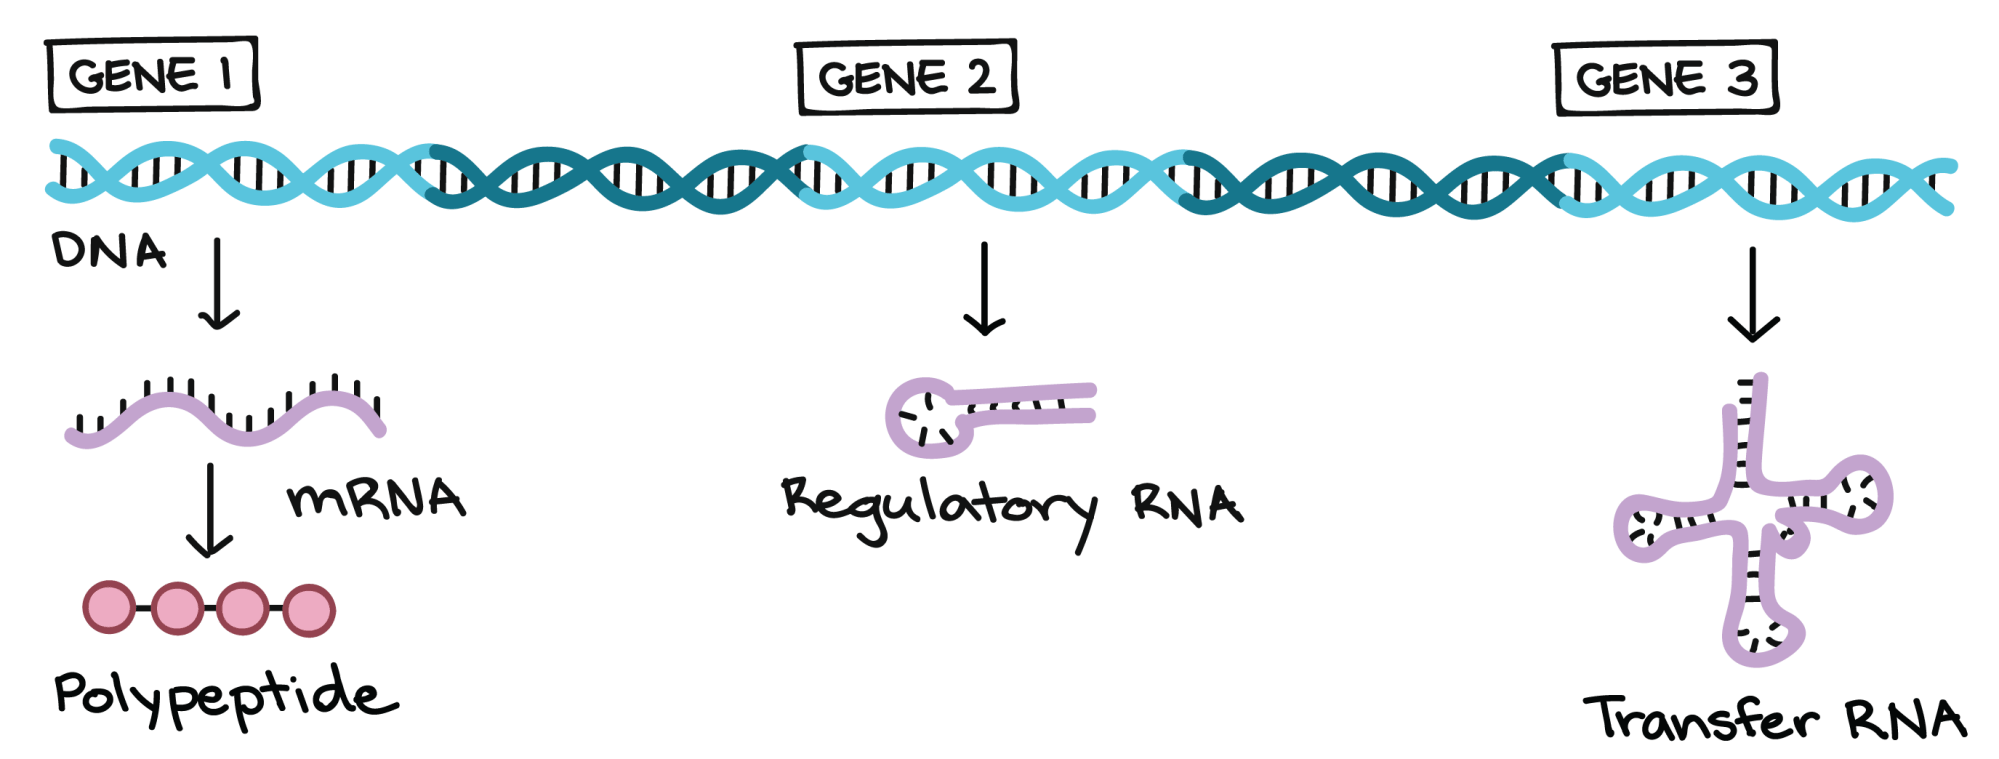 hight resolution of examples of different functional products that genes can specify in this example there is